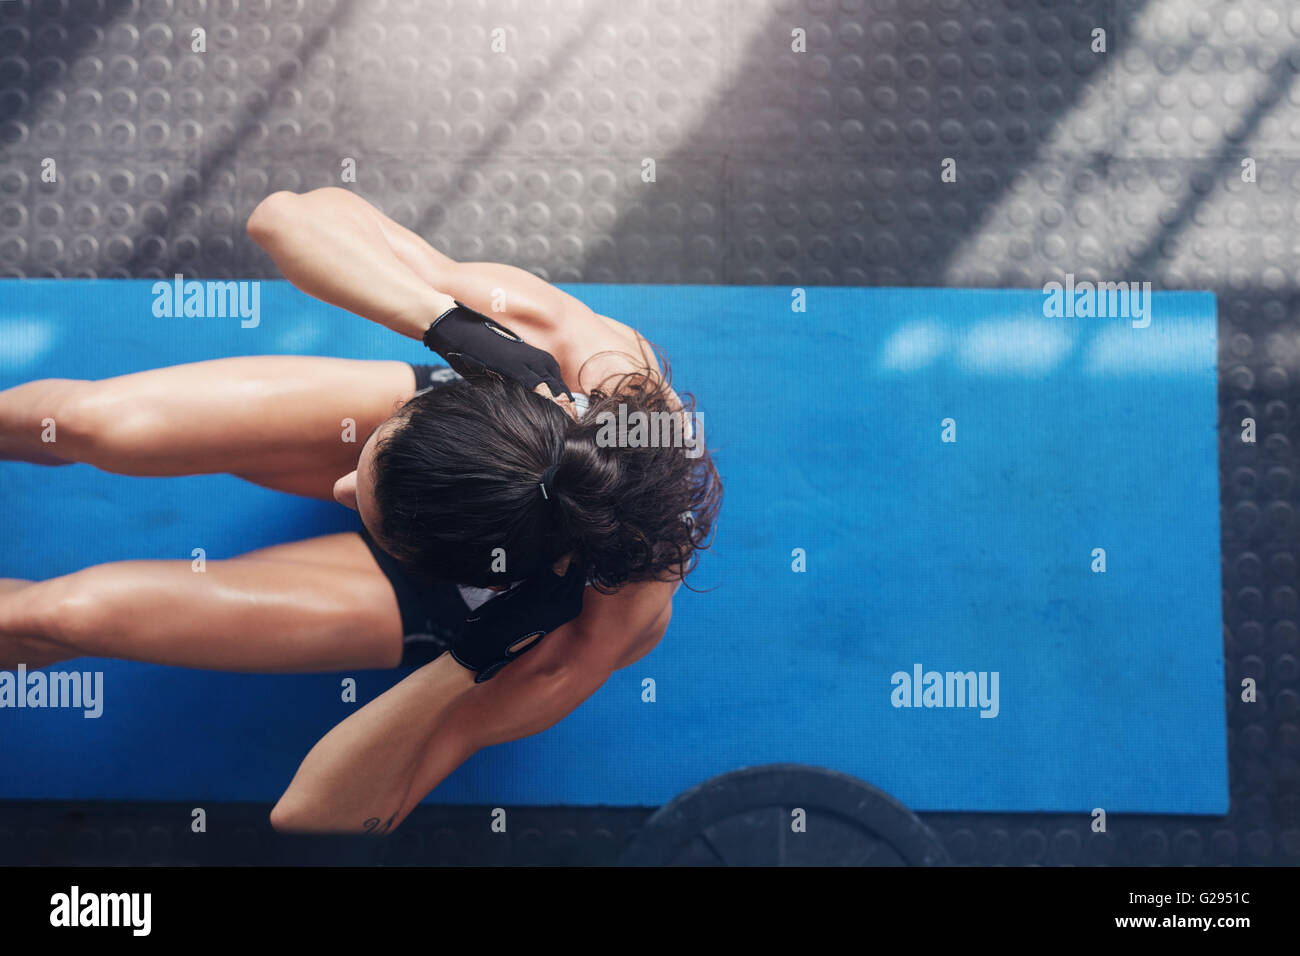 Overhead view of female working out at the gym. Muscular young woman doing sit ups on an exercise mat. - Stock Image